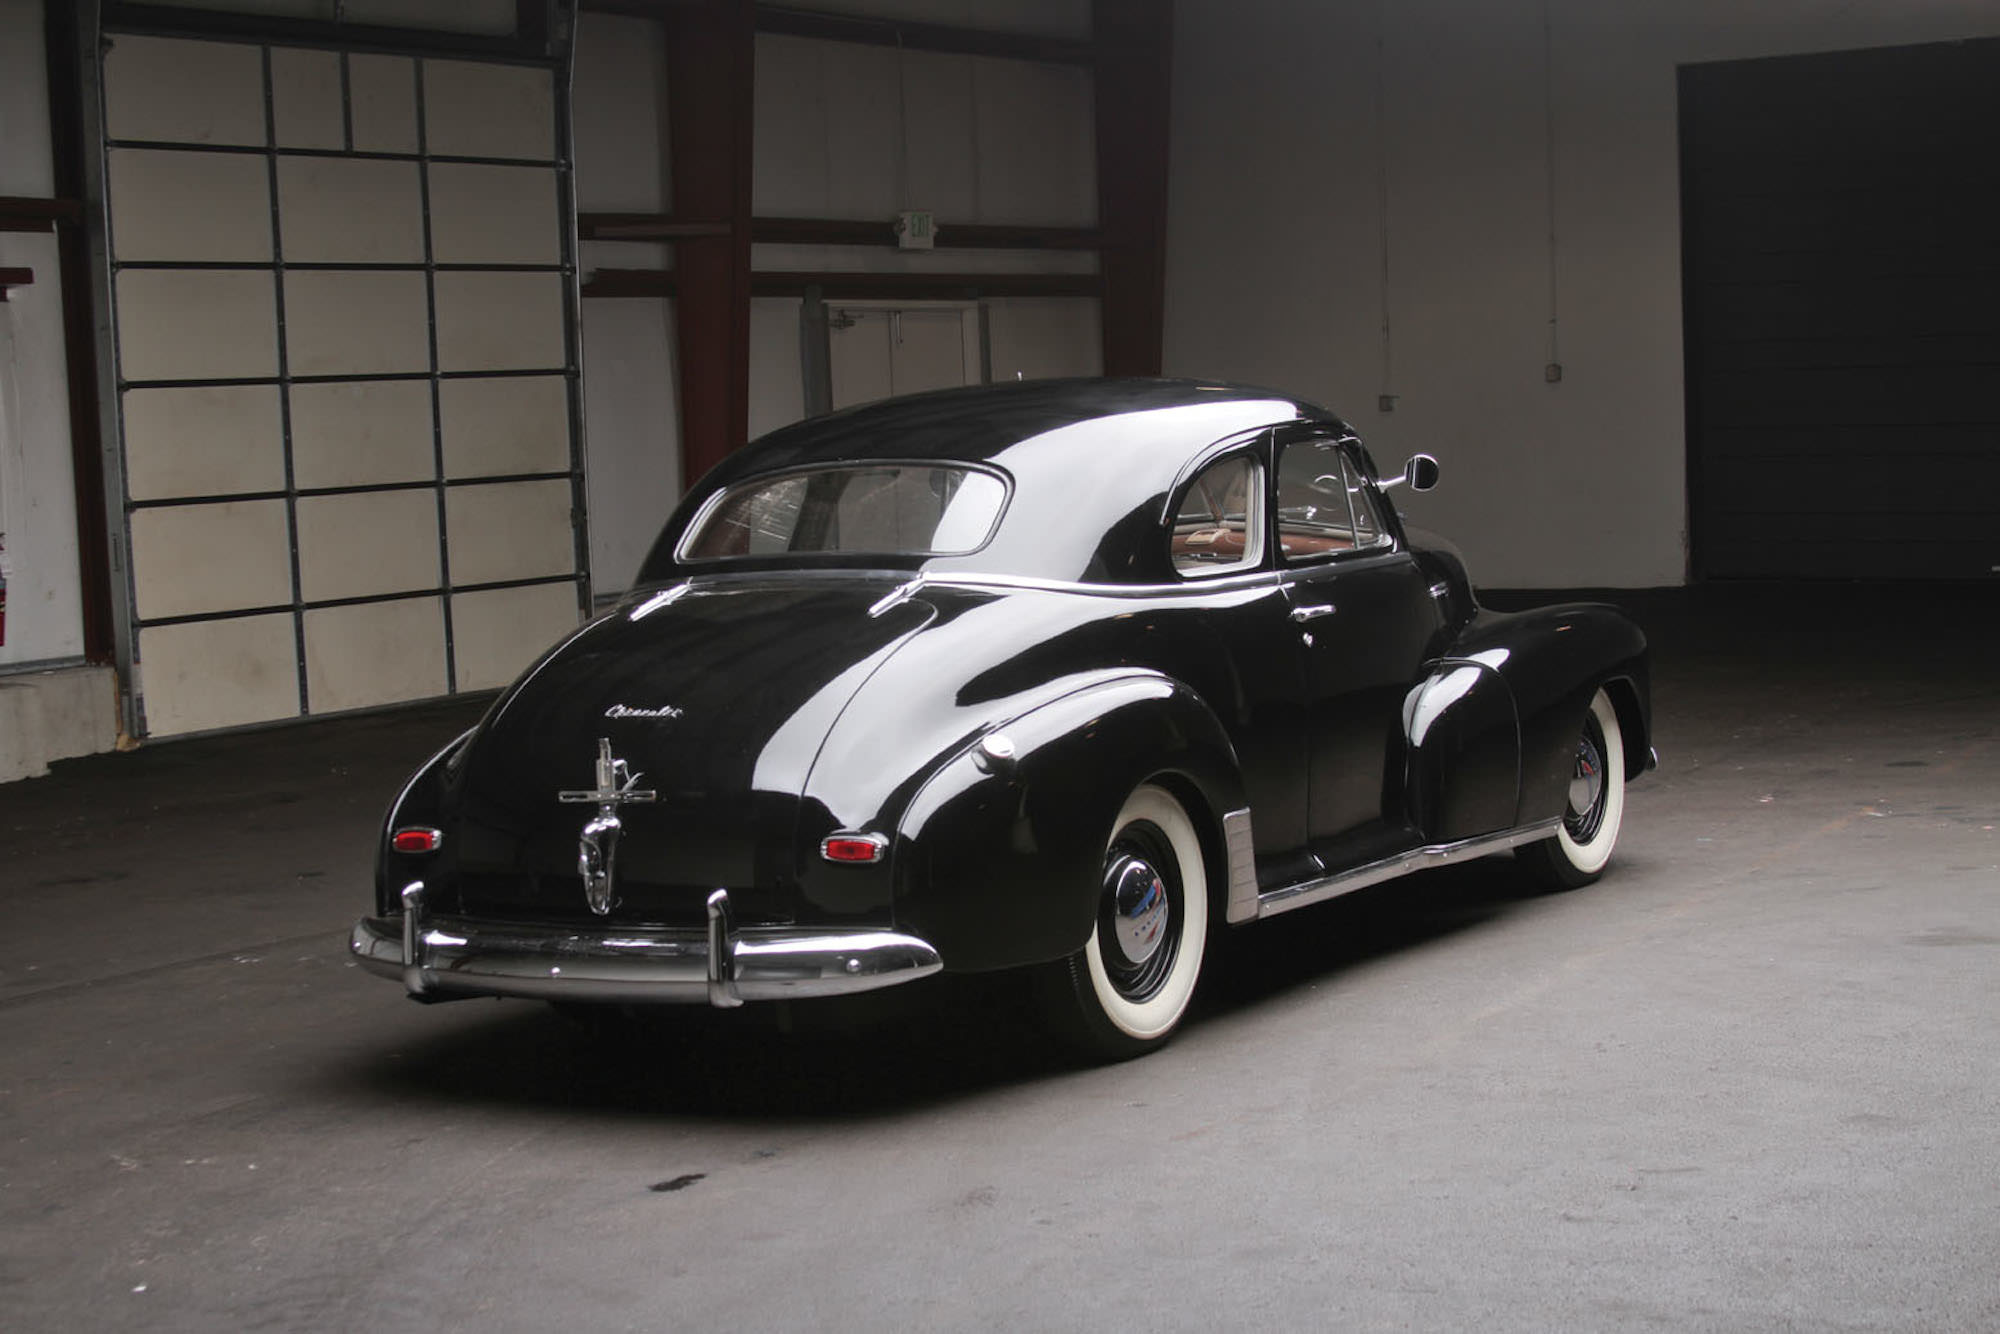 1948 chevrolet stylemaster club coupe. Black Bedroom Furniture Sets. Home Design Ideas